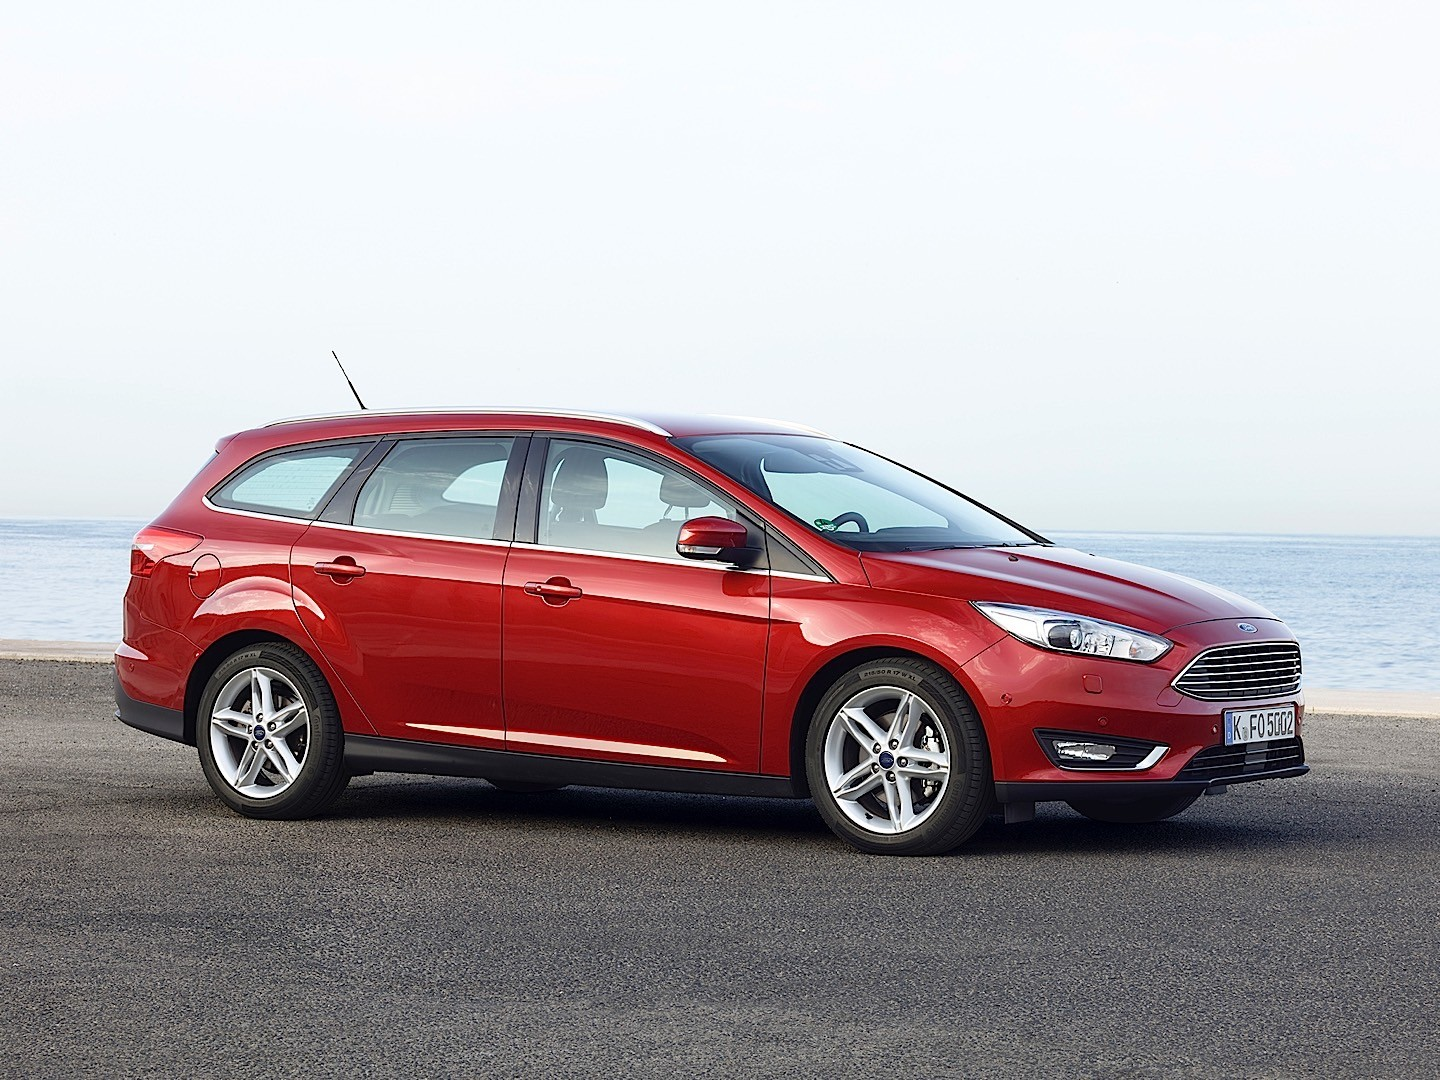 Ford Focus St 2013 Red >> FORD Focus Estate specs & photos - 2014, 2015, 2016, 2017, 2018 - autoevolution